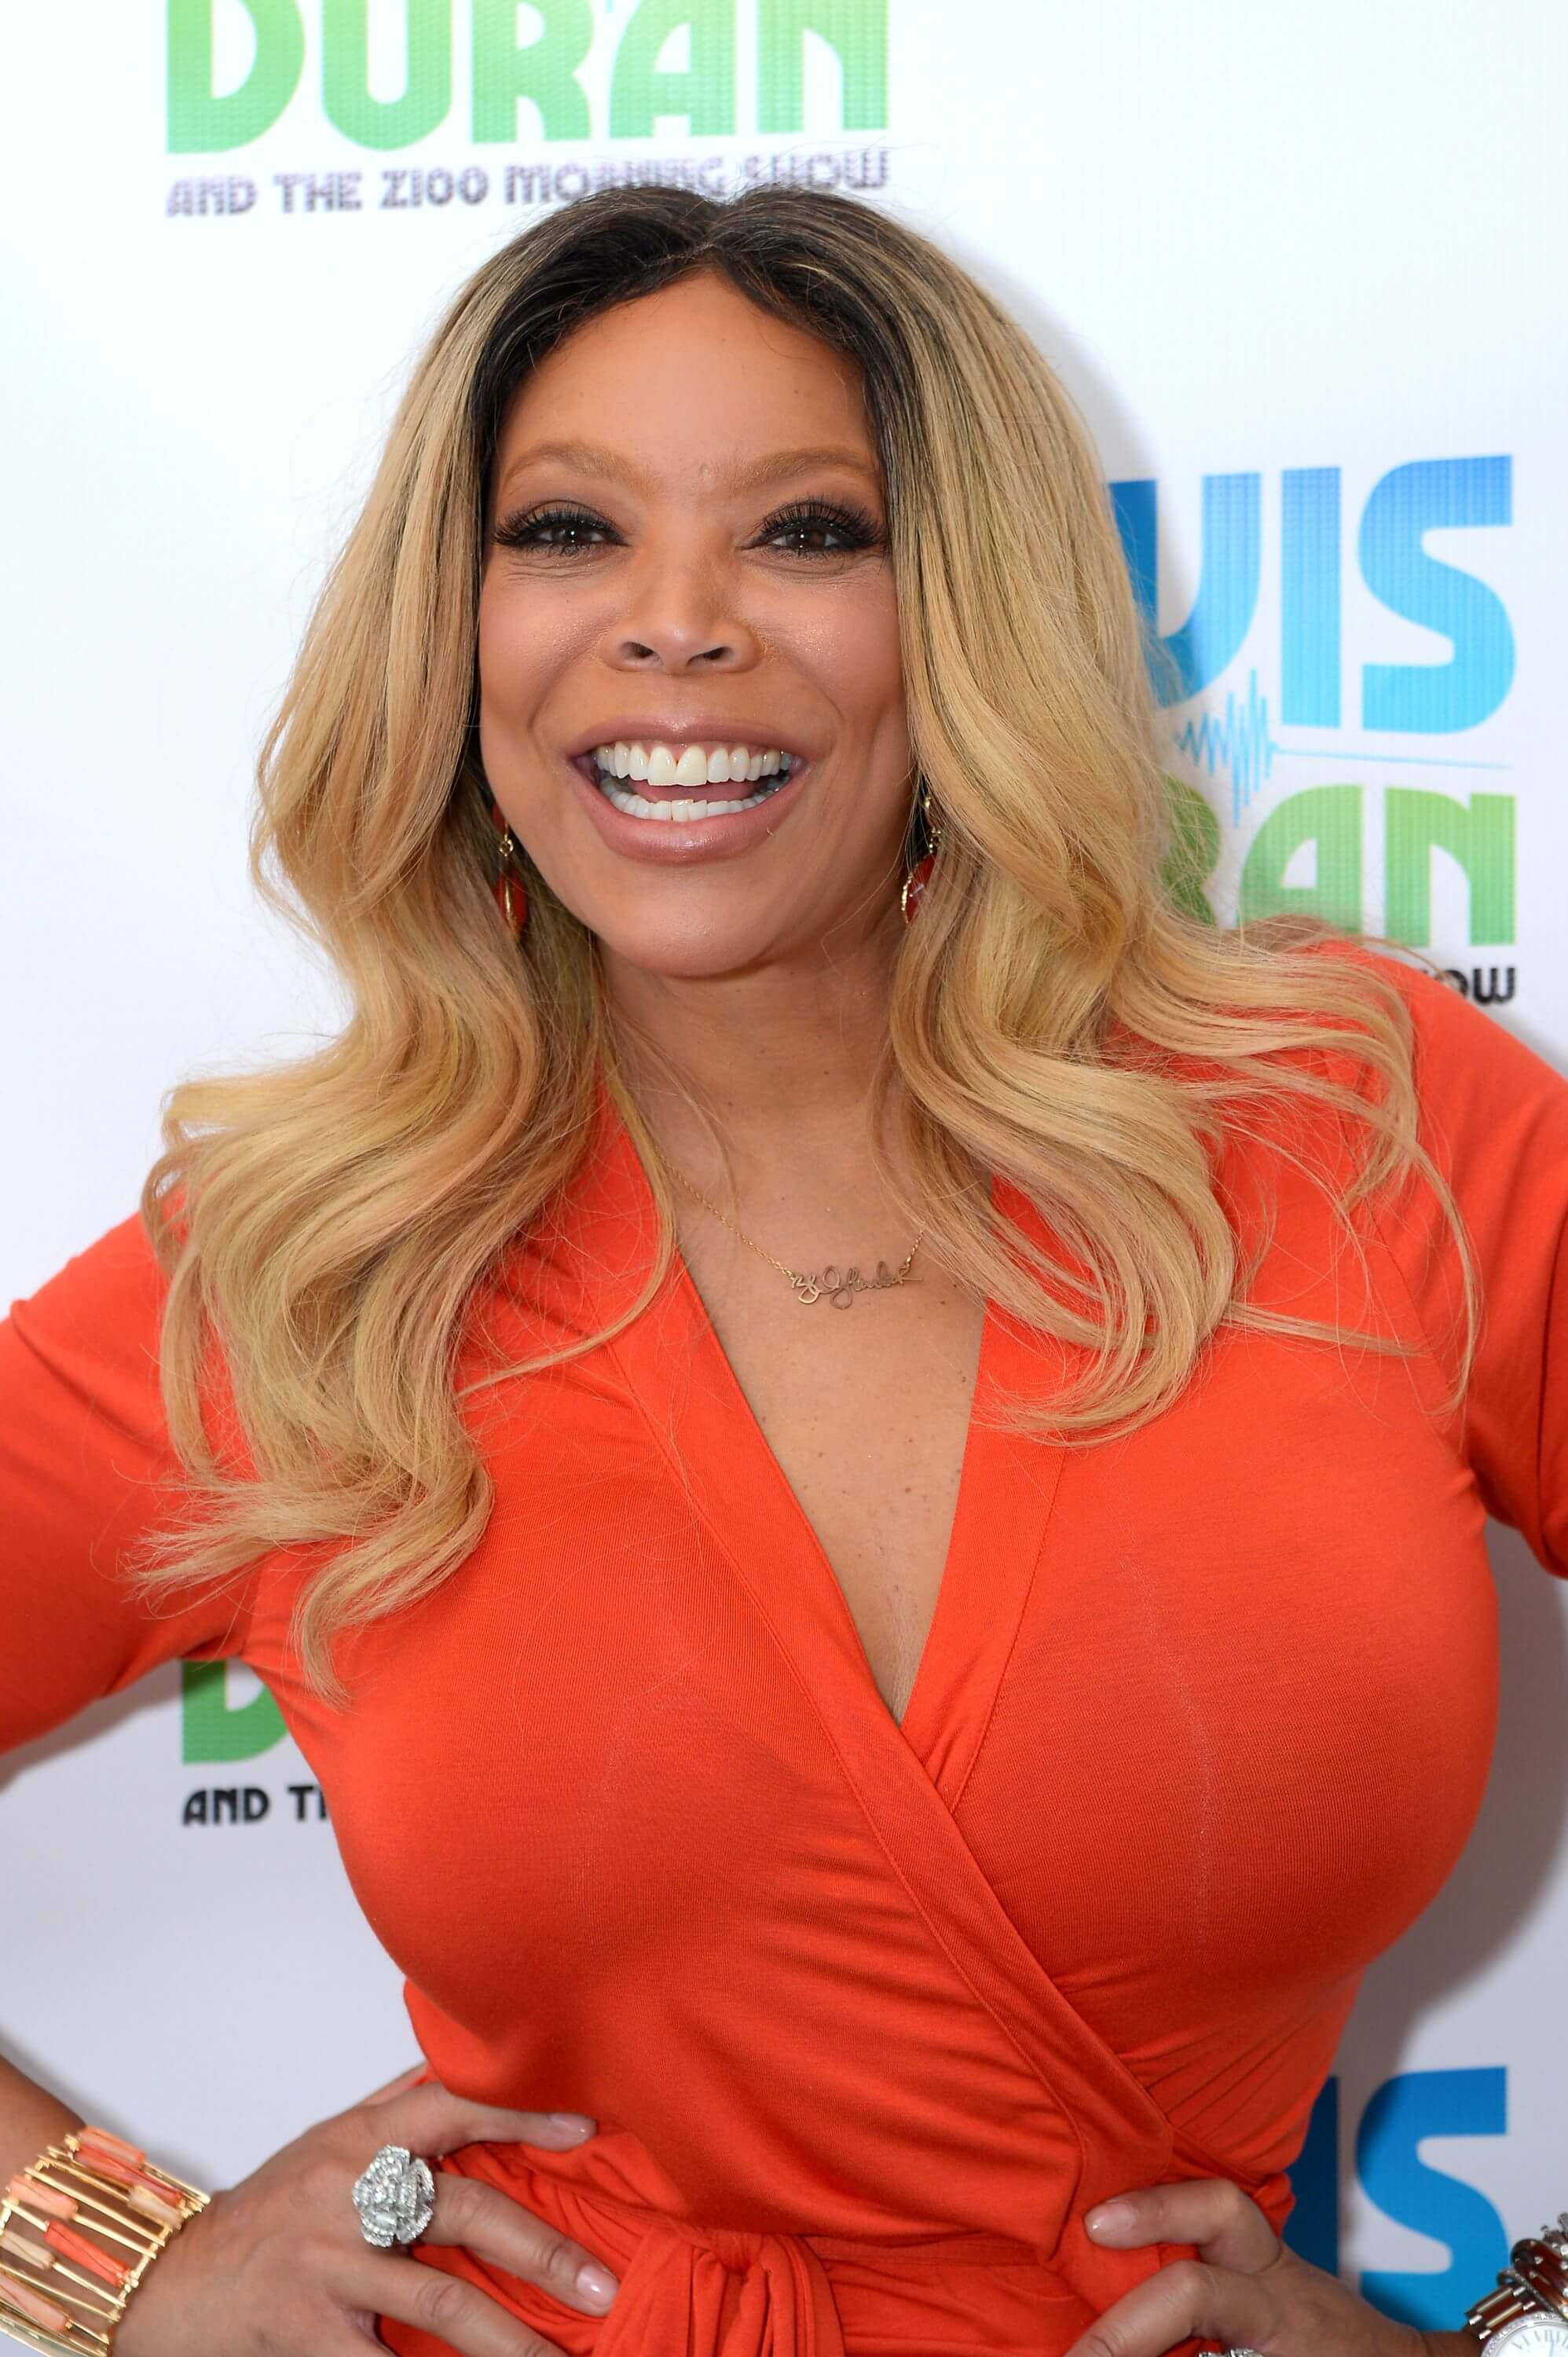 49 pictures of wendy williams will make your